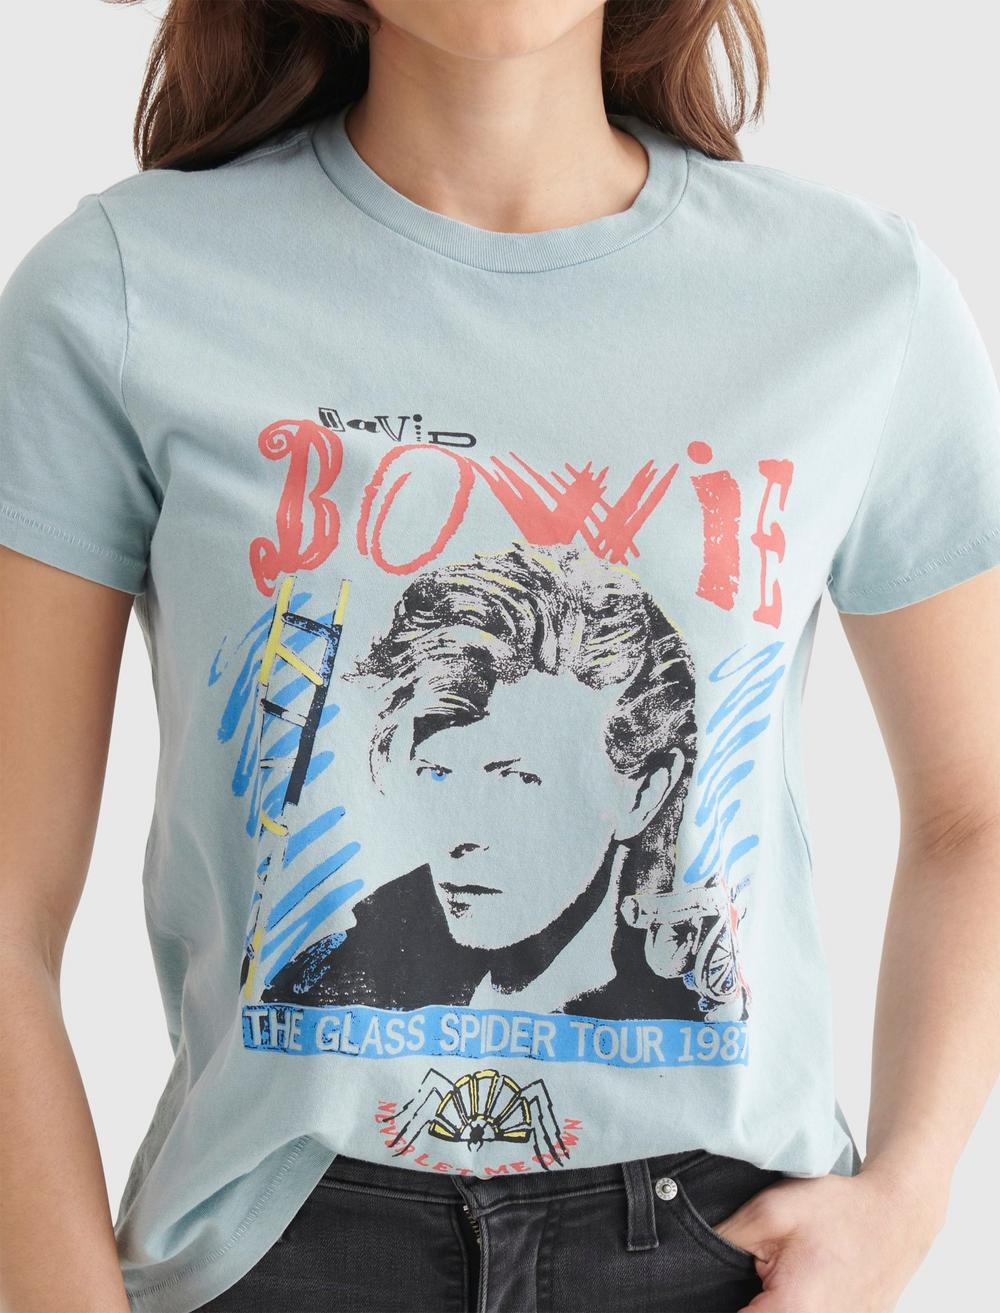 BOWIE 1987 TOUR CLASSIC CREW TEE, image 4